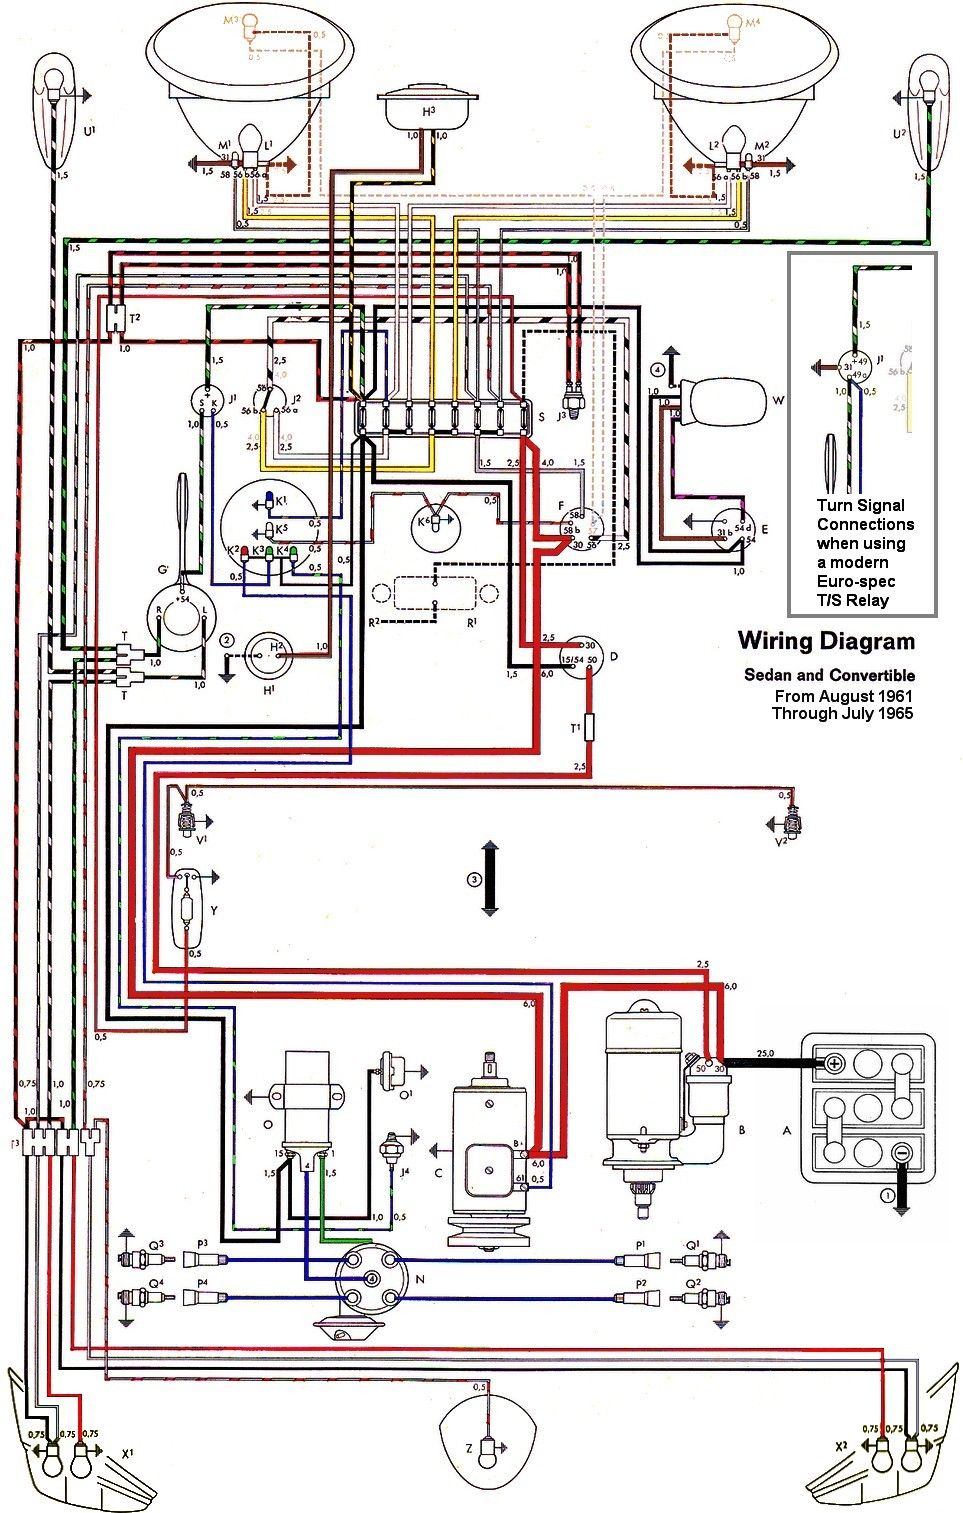 1962 vw bug wiring diagram free image wiring diagram engine wire rh linxglobal co 73 VW Beetle Wiring Diagram 73 VW Beetle Wiring Diagram